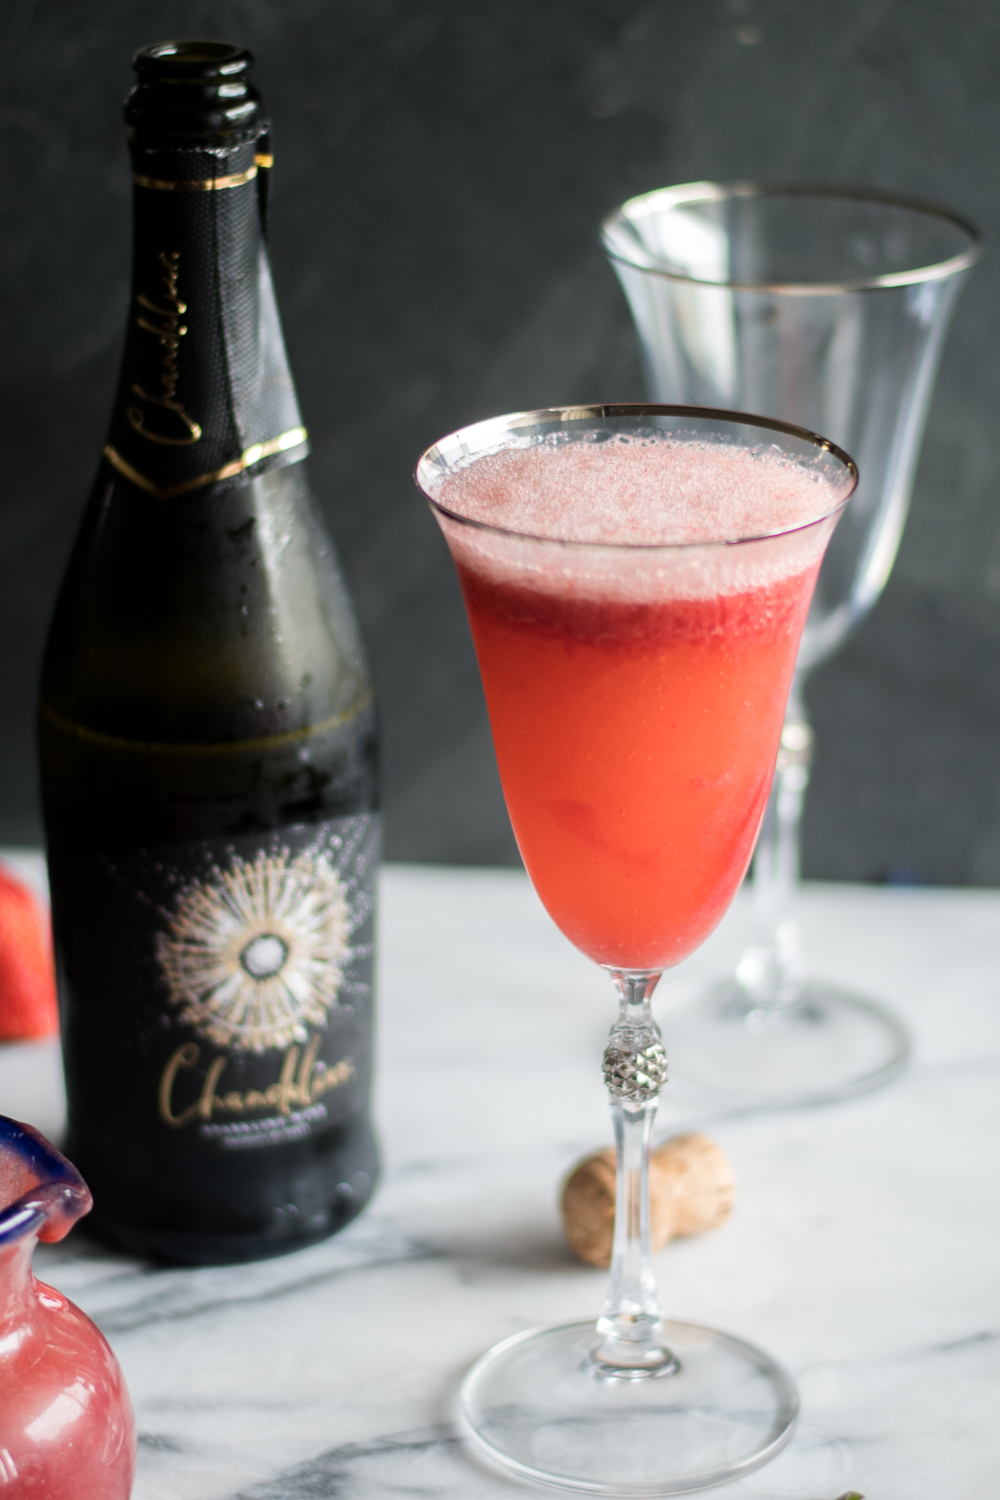 Strawberry Bellini is a twist on the classic peach bellini which is made with peach puree and sparkling wine. Instead of using peach puree, this cocktail uses a strawberry puree. #wine #summer #cocktail